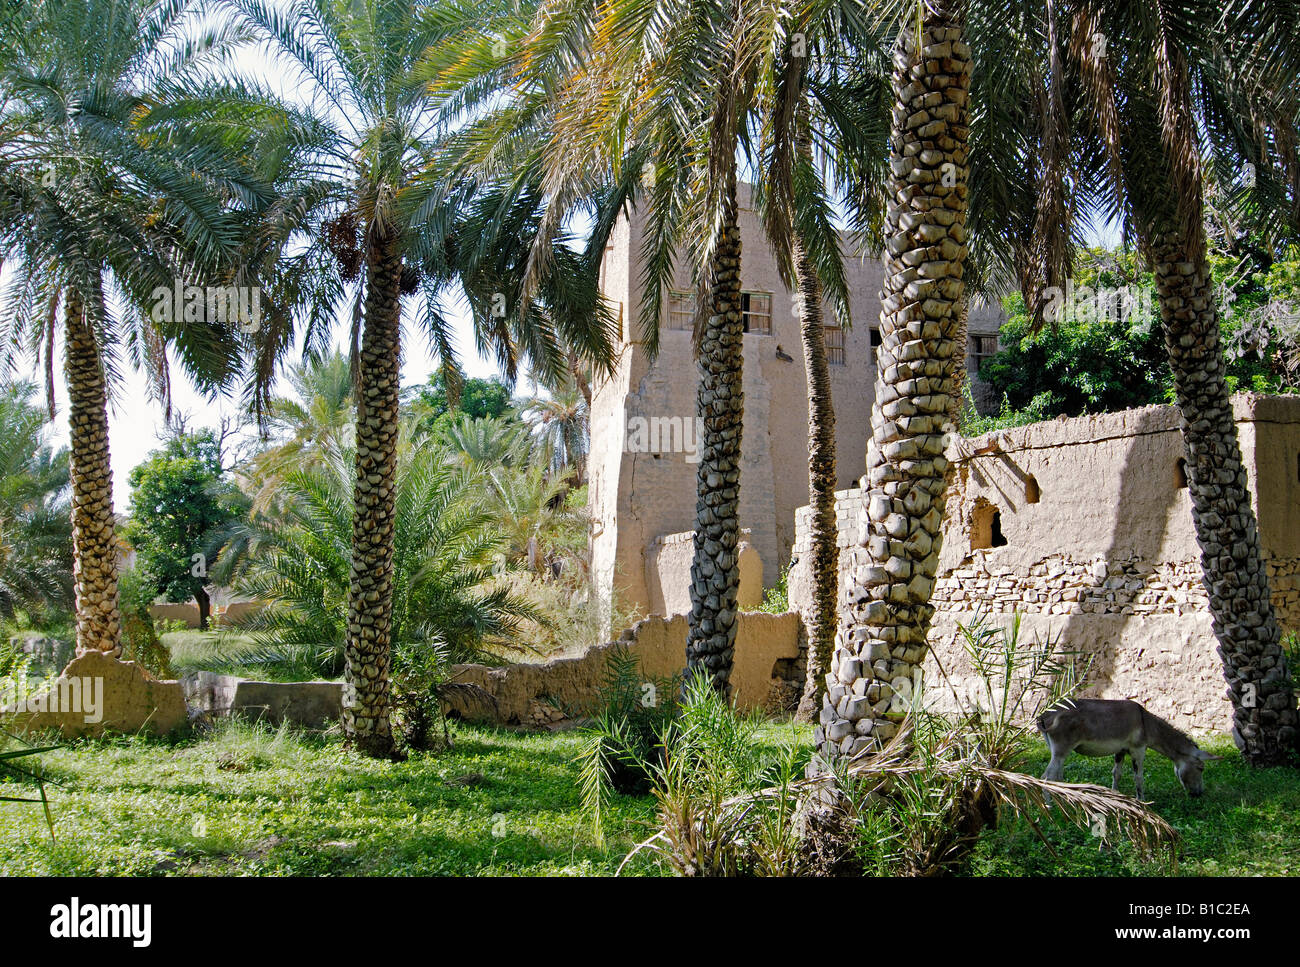 geography / travel, Oman, Al-Hamra, oasis with palm trees, Additional-Rights-Clearance-Info-Not-Available - Stock Image